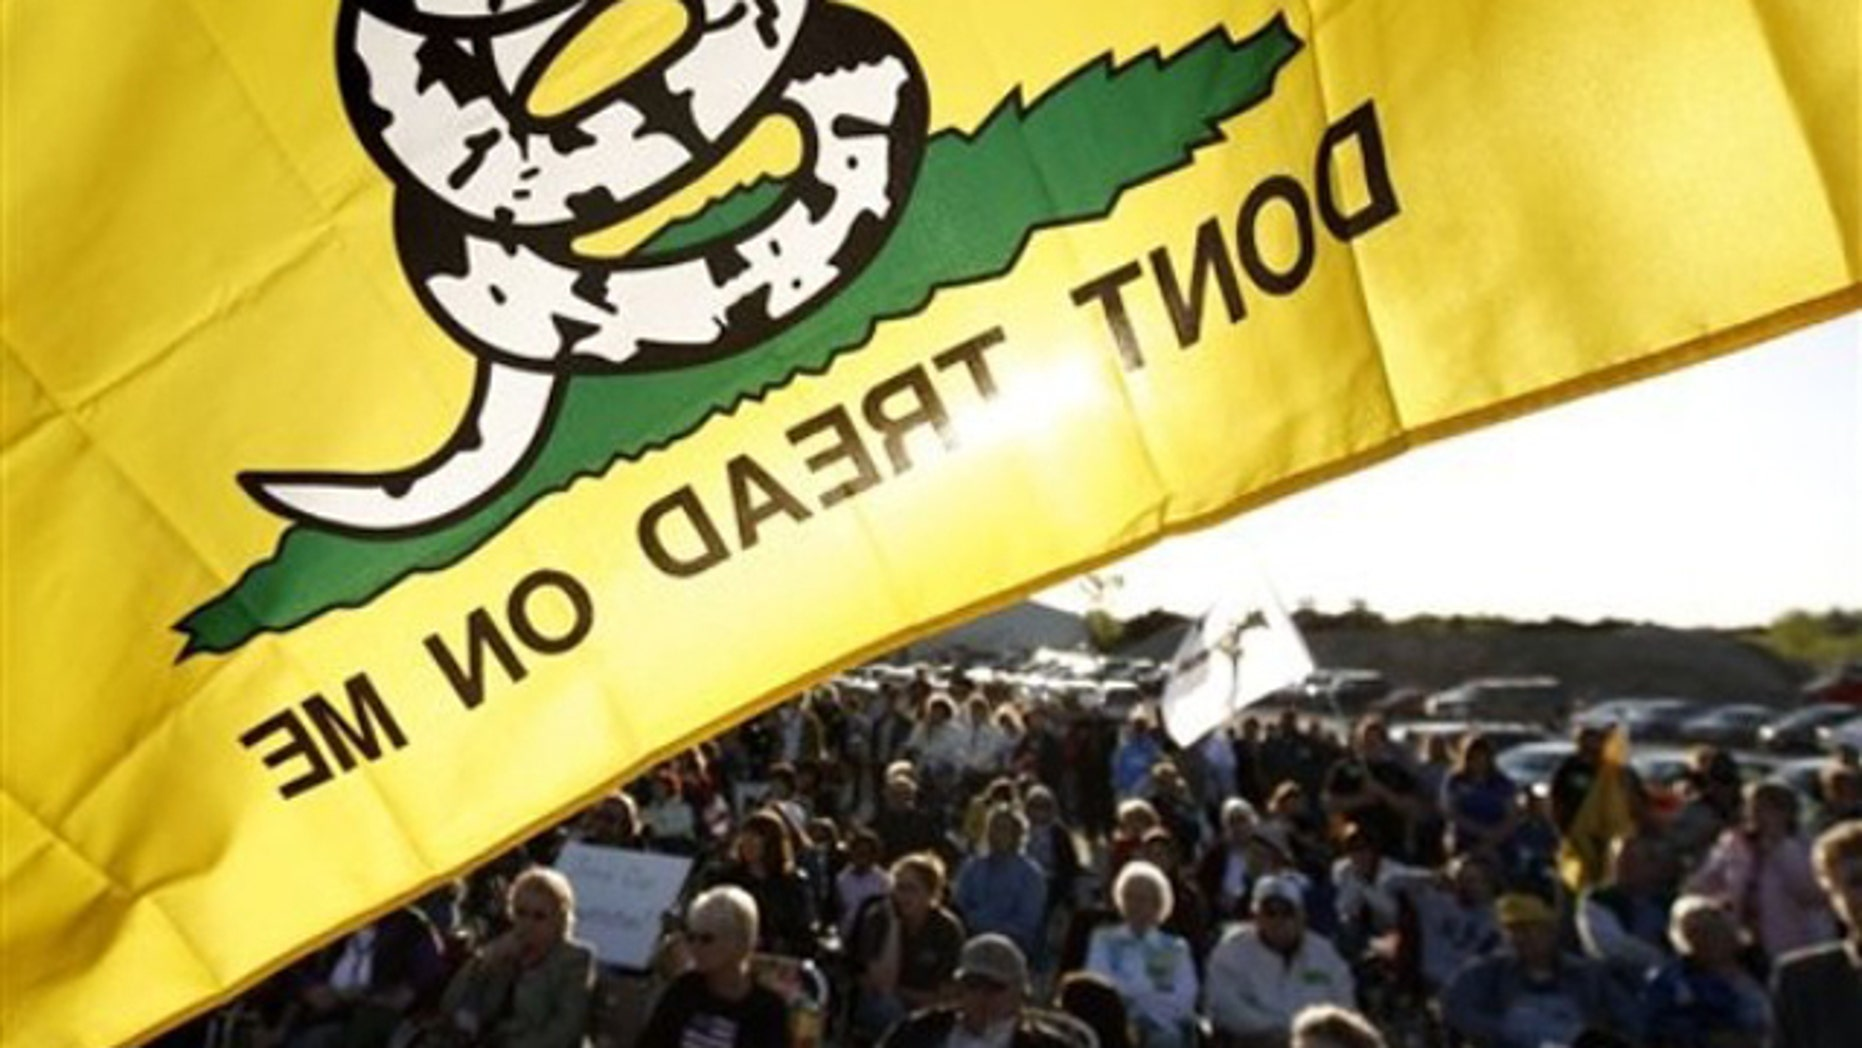 In this April 27 photo, a 'Don't Tread On Me' flag flies over Republican and Tea Party protesters during a rally at Leo O'Laughlin Inc. on the eve of President Obama's visit to Macon, Mo. (AP Photo)